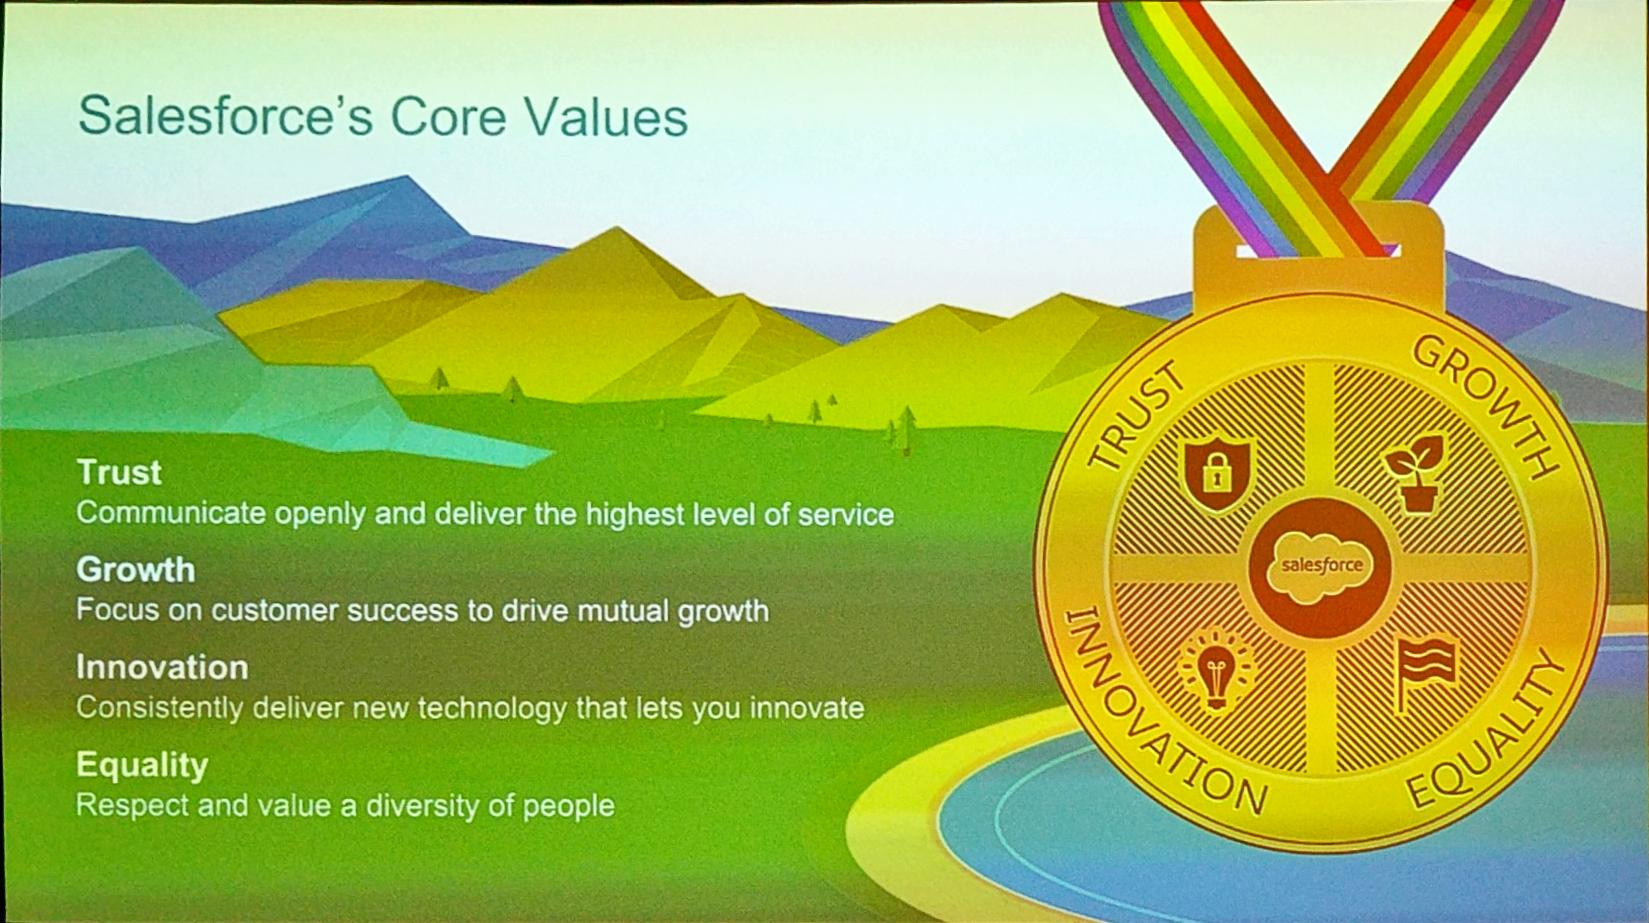 4 core values support @Salesforce #Ohana - Trust  - Growth - Innovation - Equality  #SalesforceAR https://t.co/oalS4eqCMd